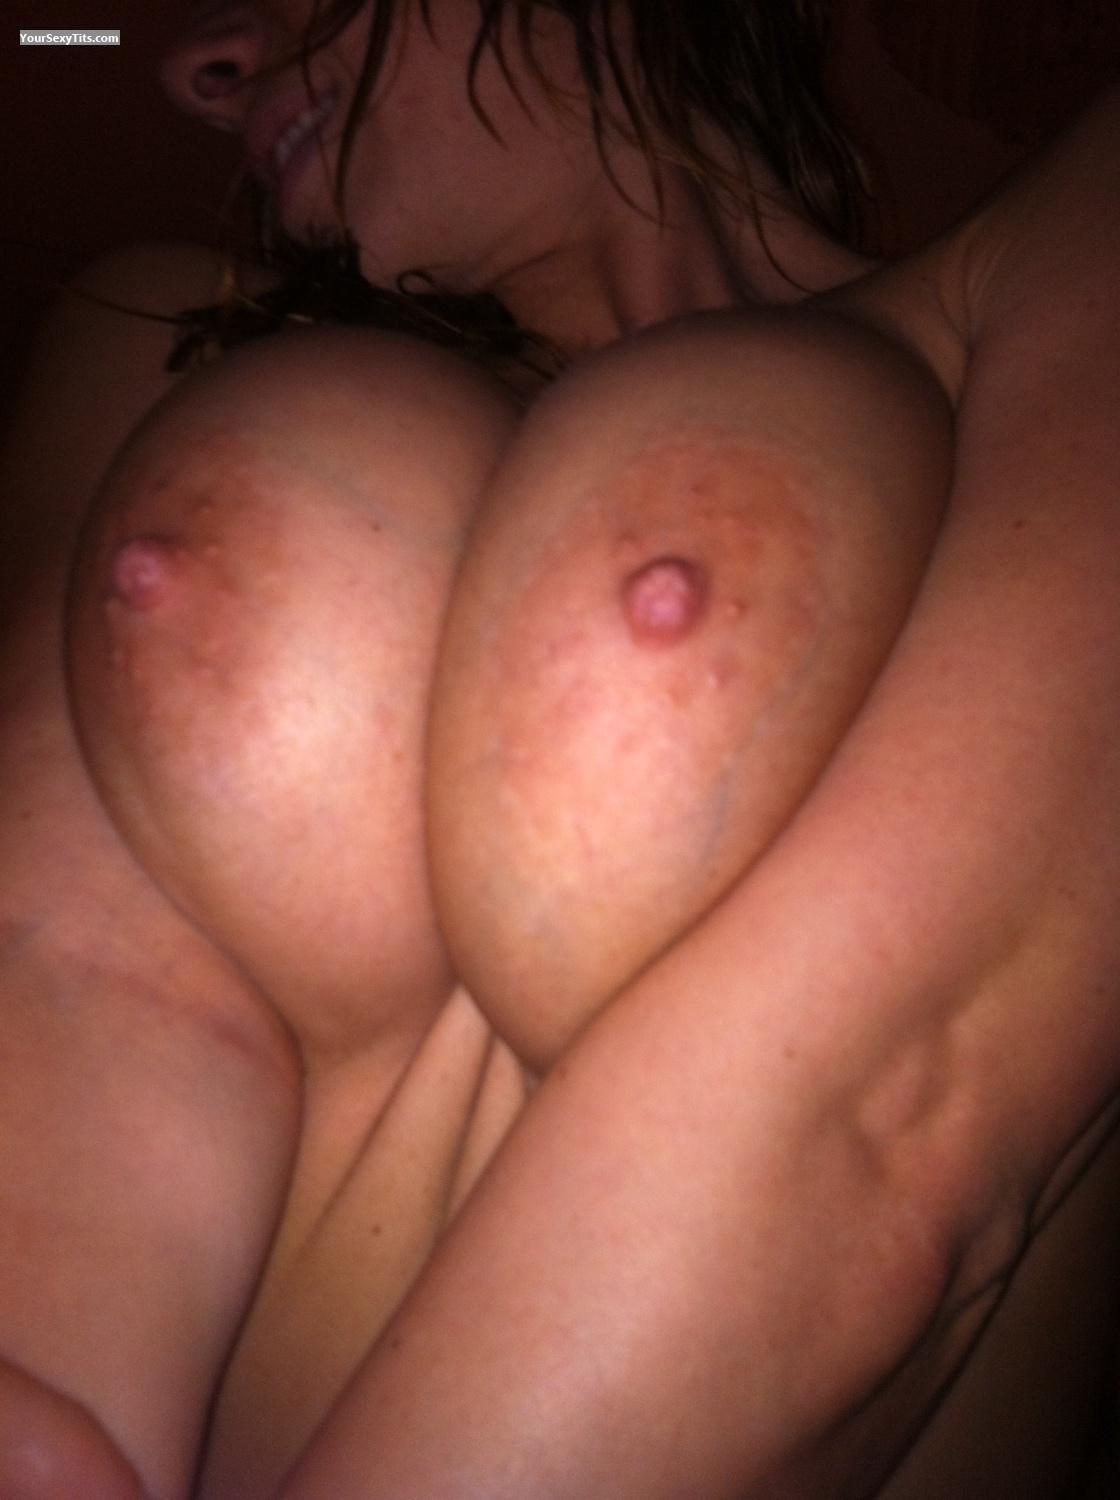 Tit Flash: Very Big Tits By IPhone - Jackie La from United States